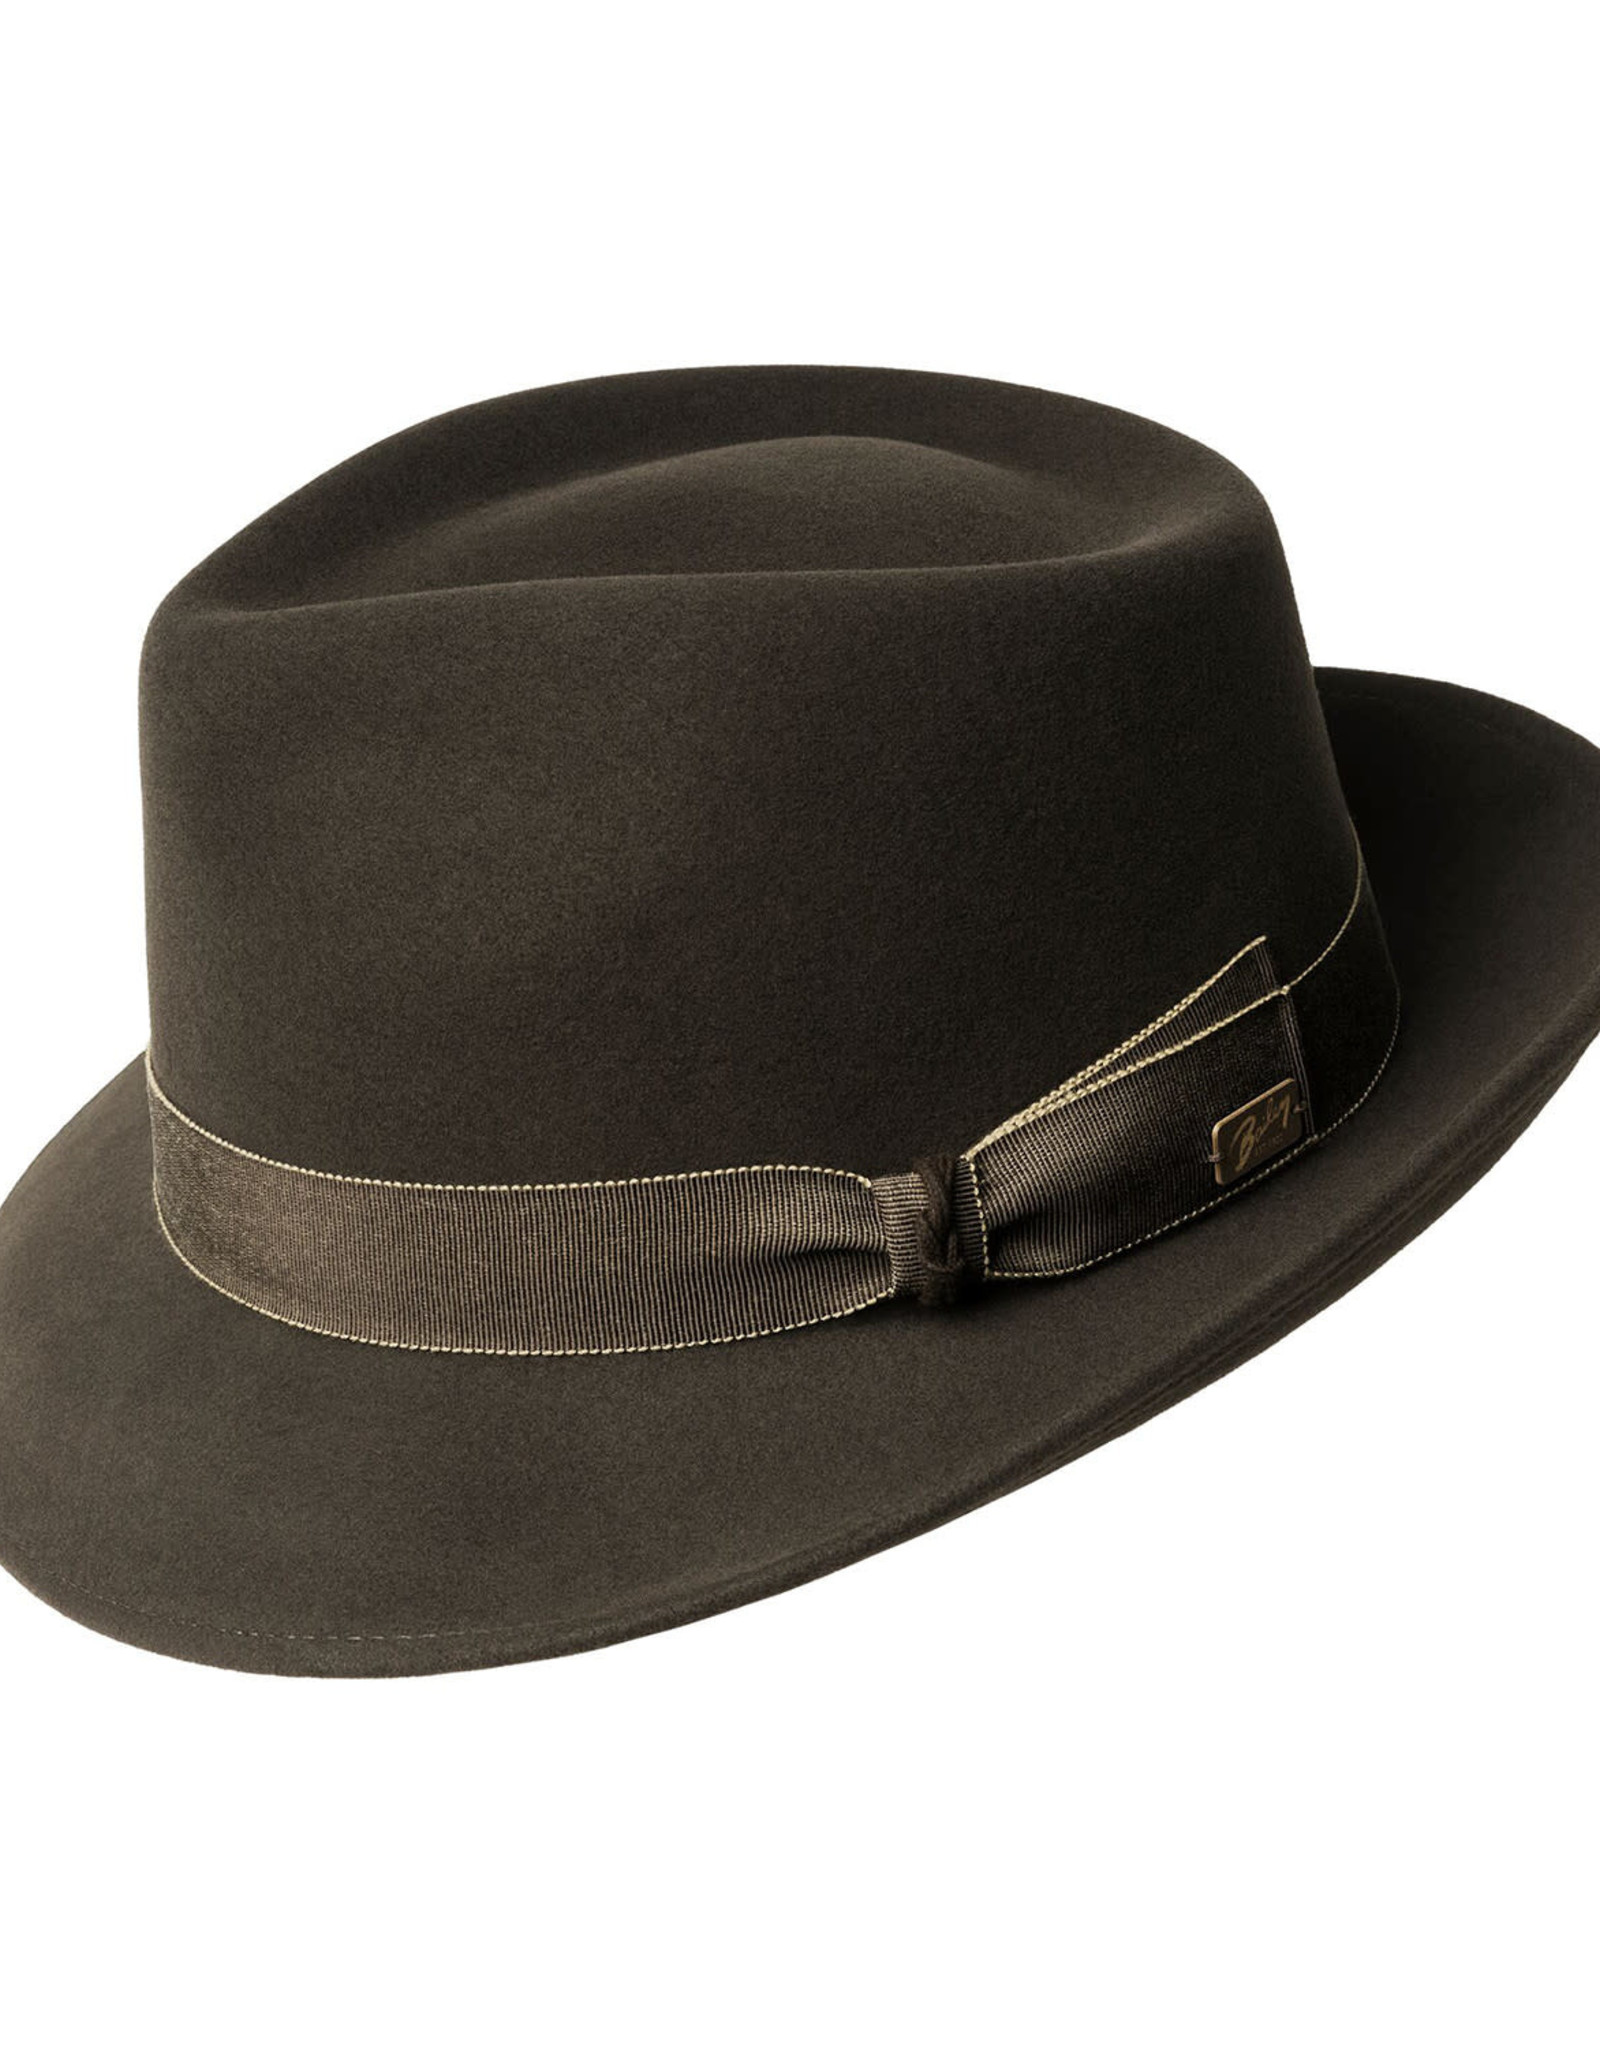 Bailey Hat Co. HAT-FEDORA-SEER-LOW TEARDROP CROWN